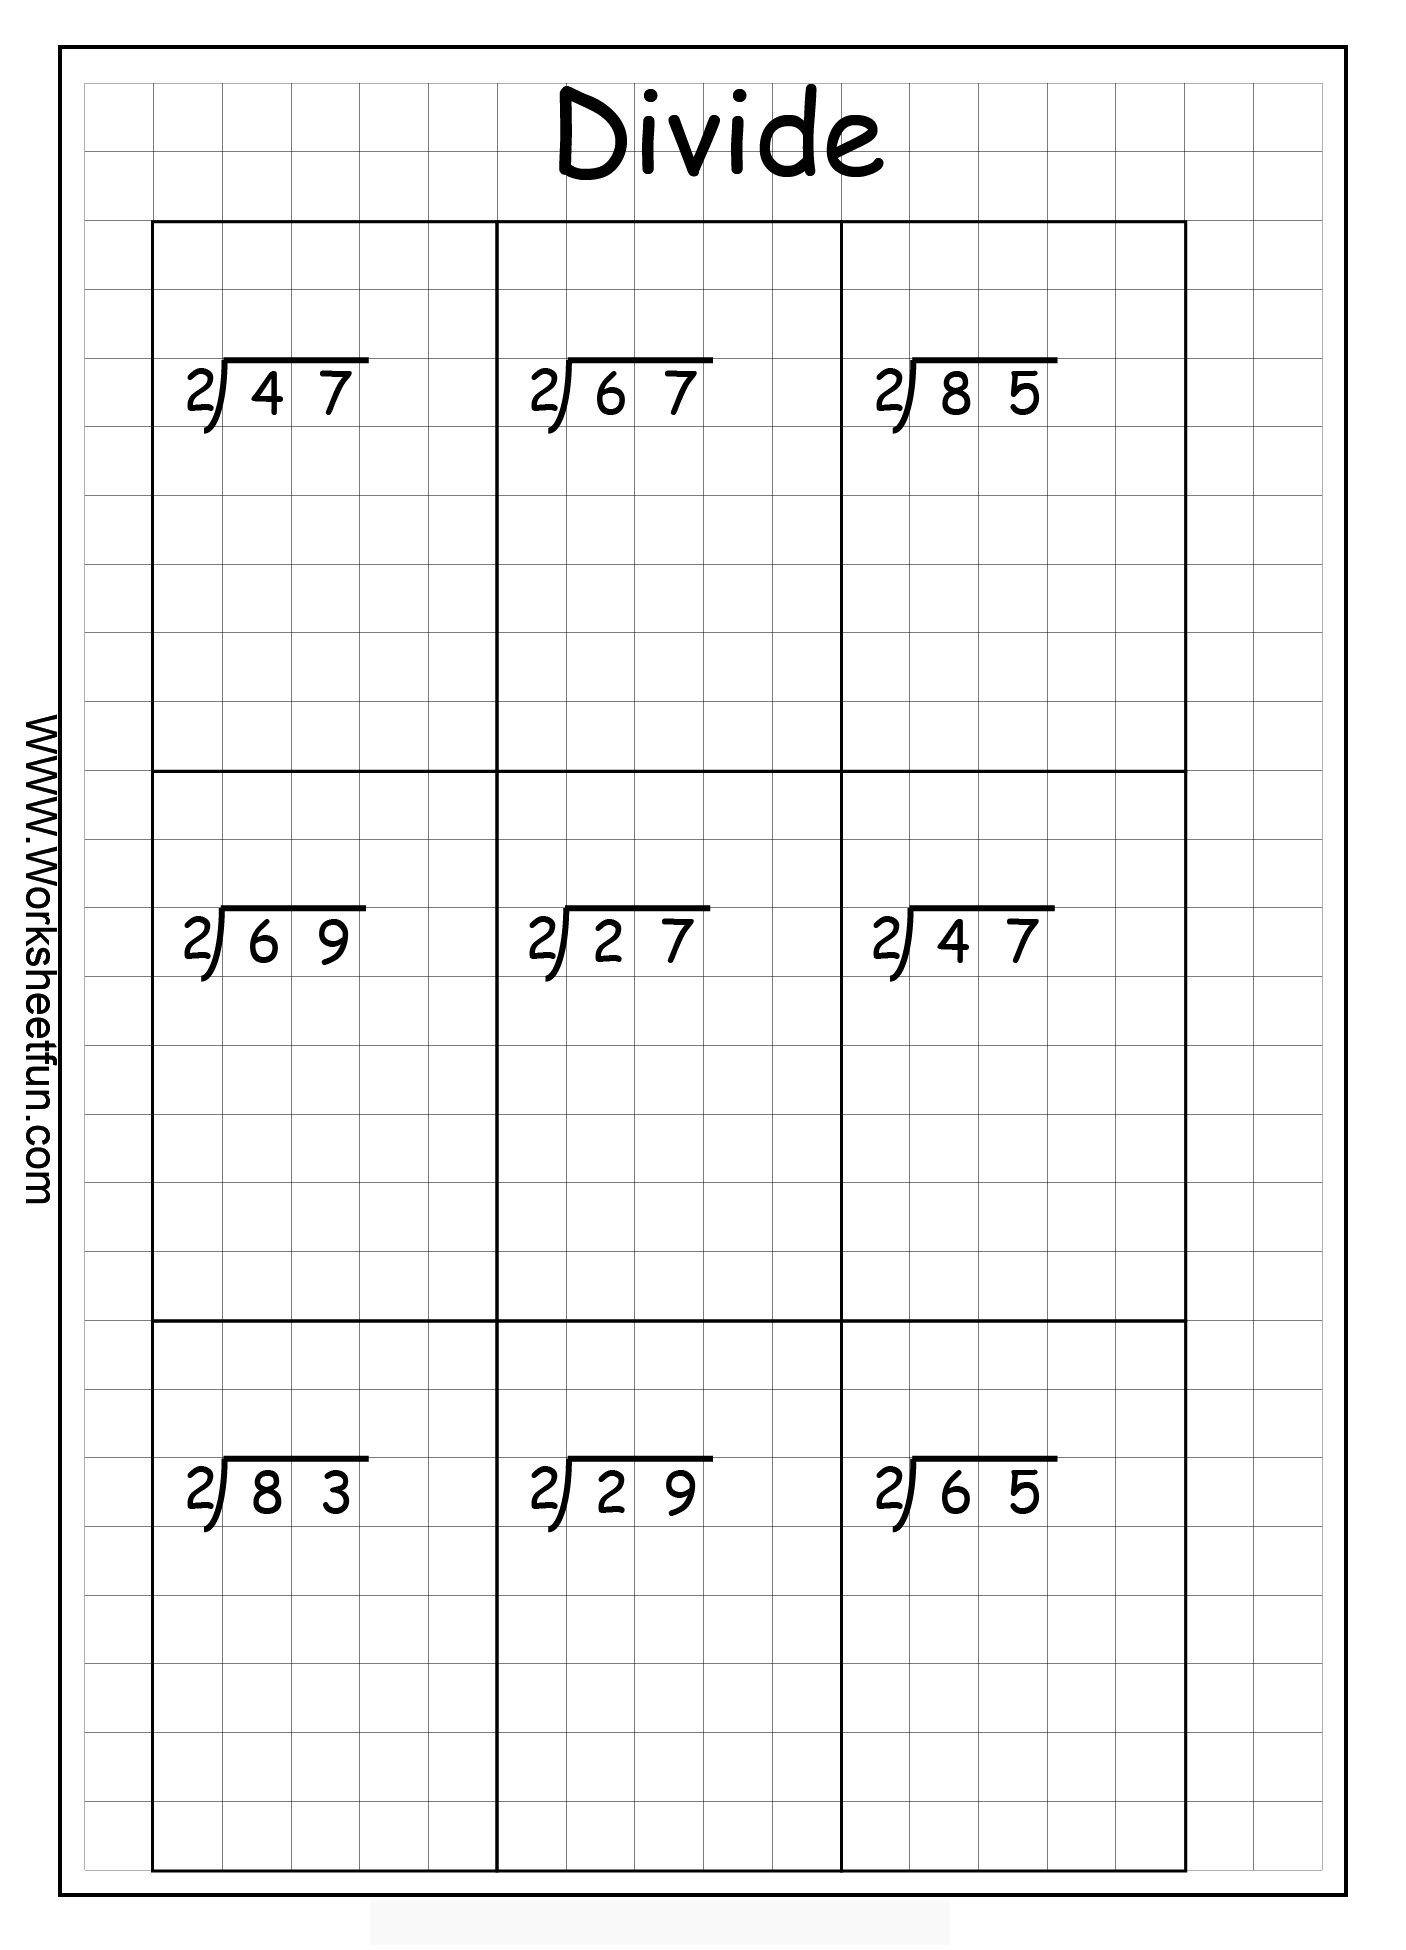 Long Division 2 Digits By 1 Digit With Remainders 8